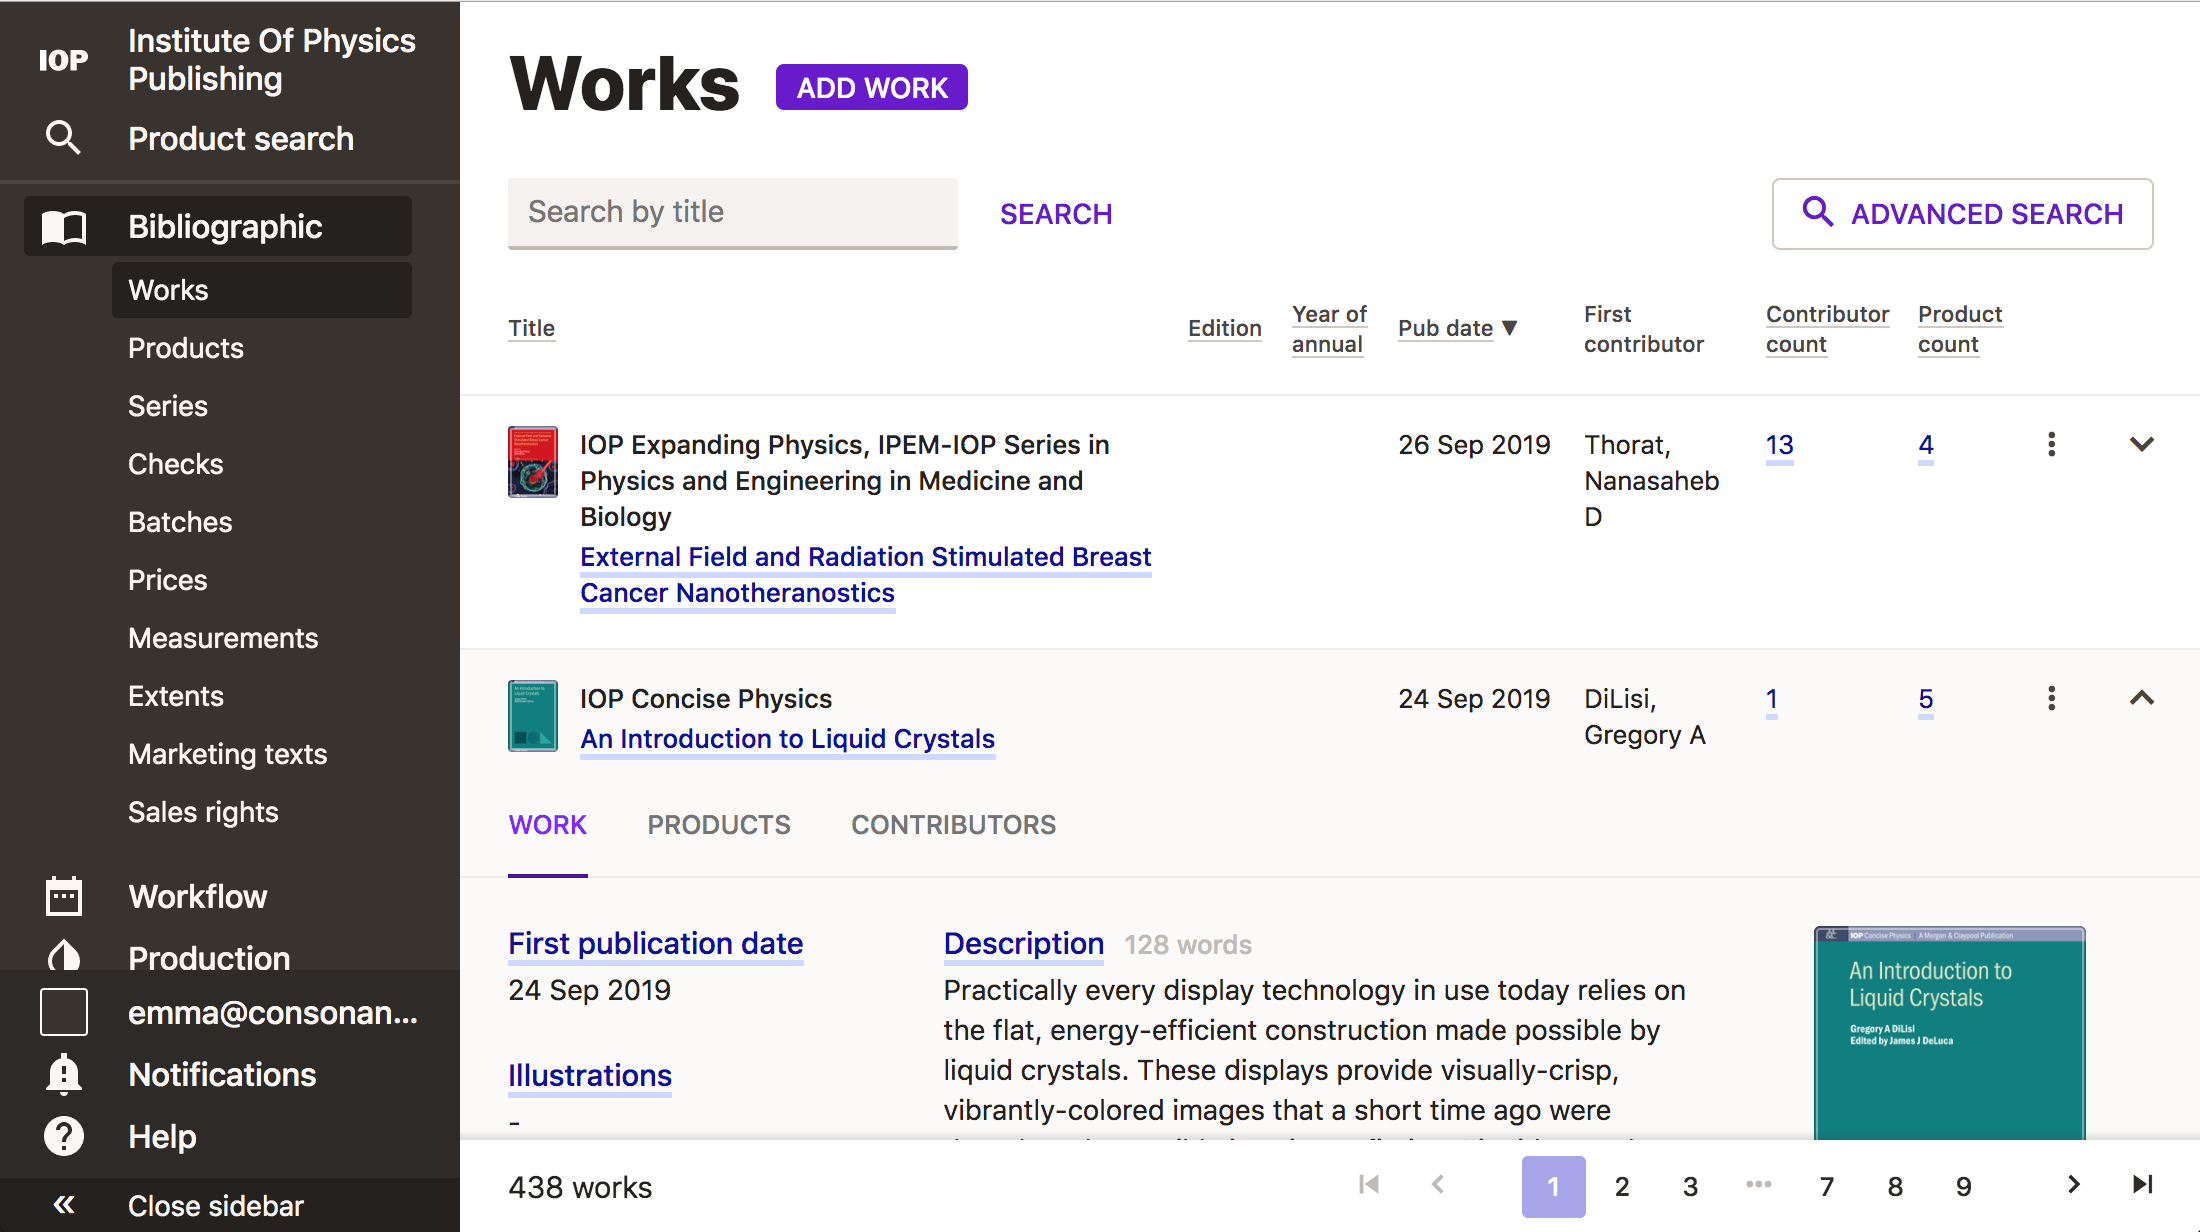 Screenshot showing works page